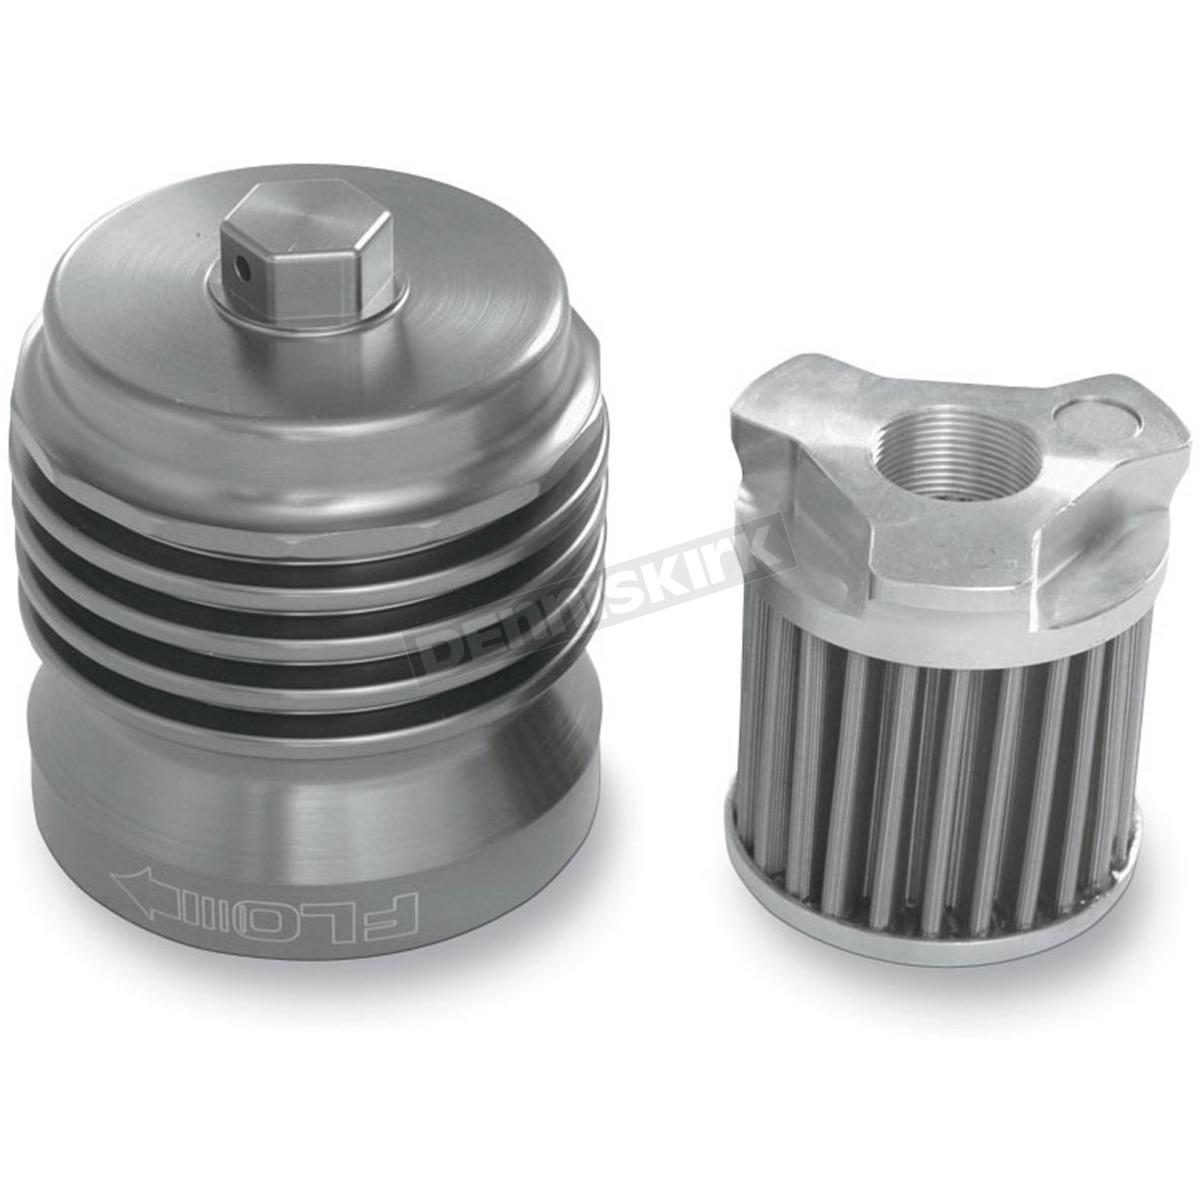 Stainless Steel Reusable Spin On Oil Filter Pcs1